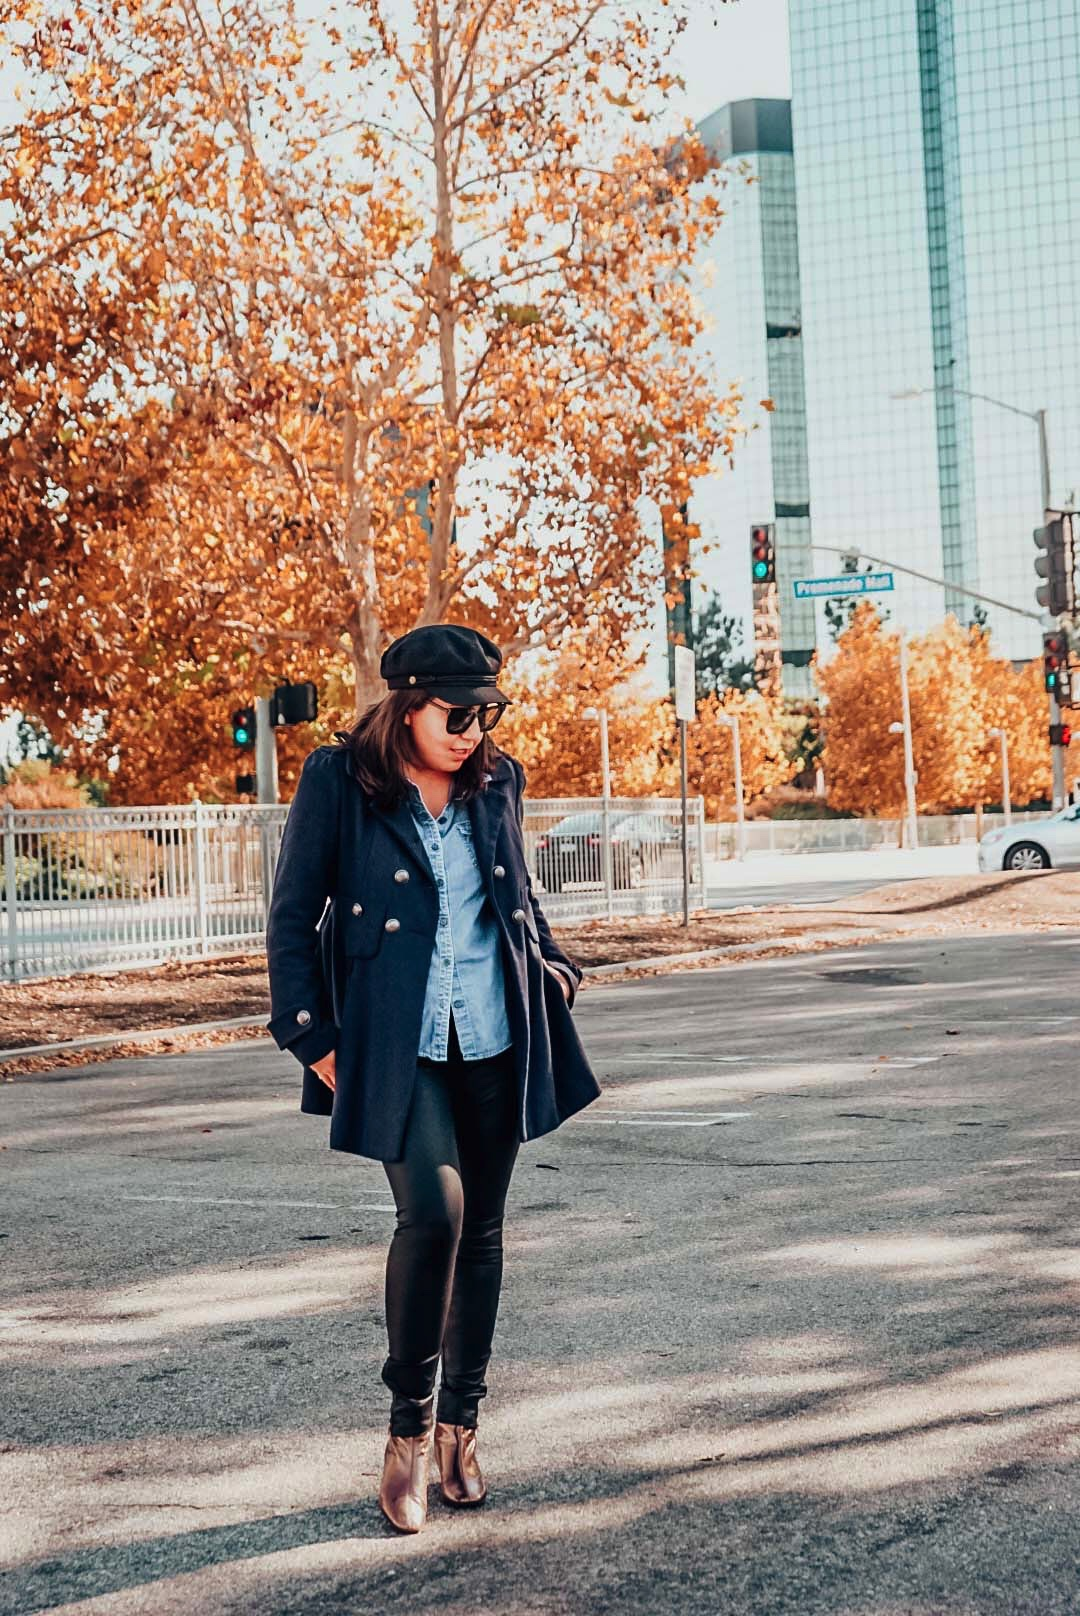 Autumn foliage with a woman wearing navy wool coat, newsboy hat, faux leather leggings, and metallic ankle boots in the city.